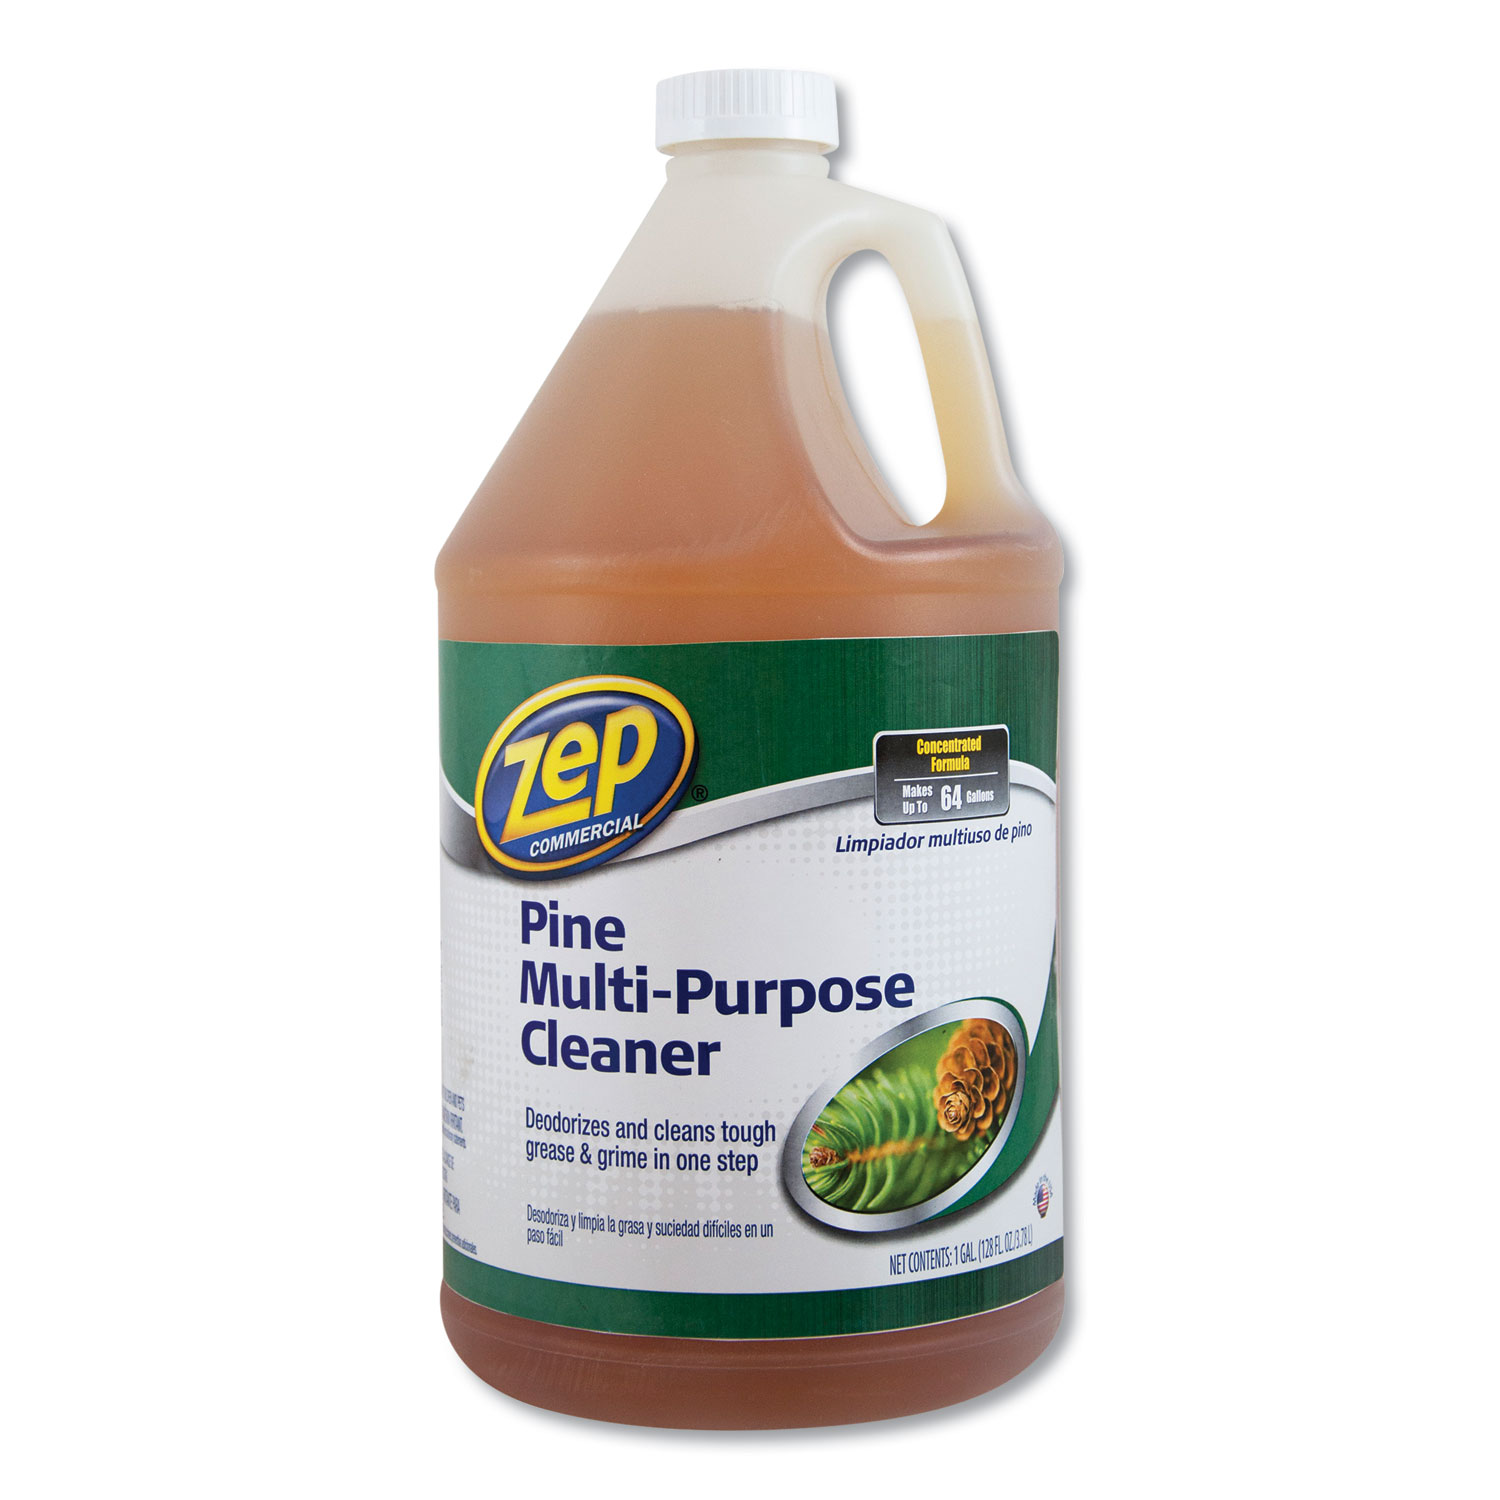 Pine Multi-Purpose Cleaner, Pine Scent, 1 Gal, 4/Carton